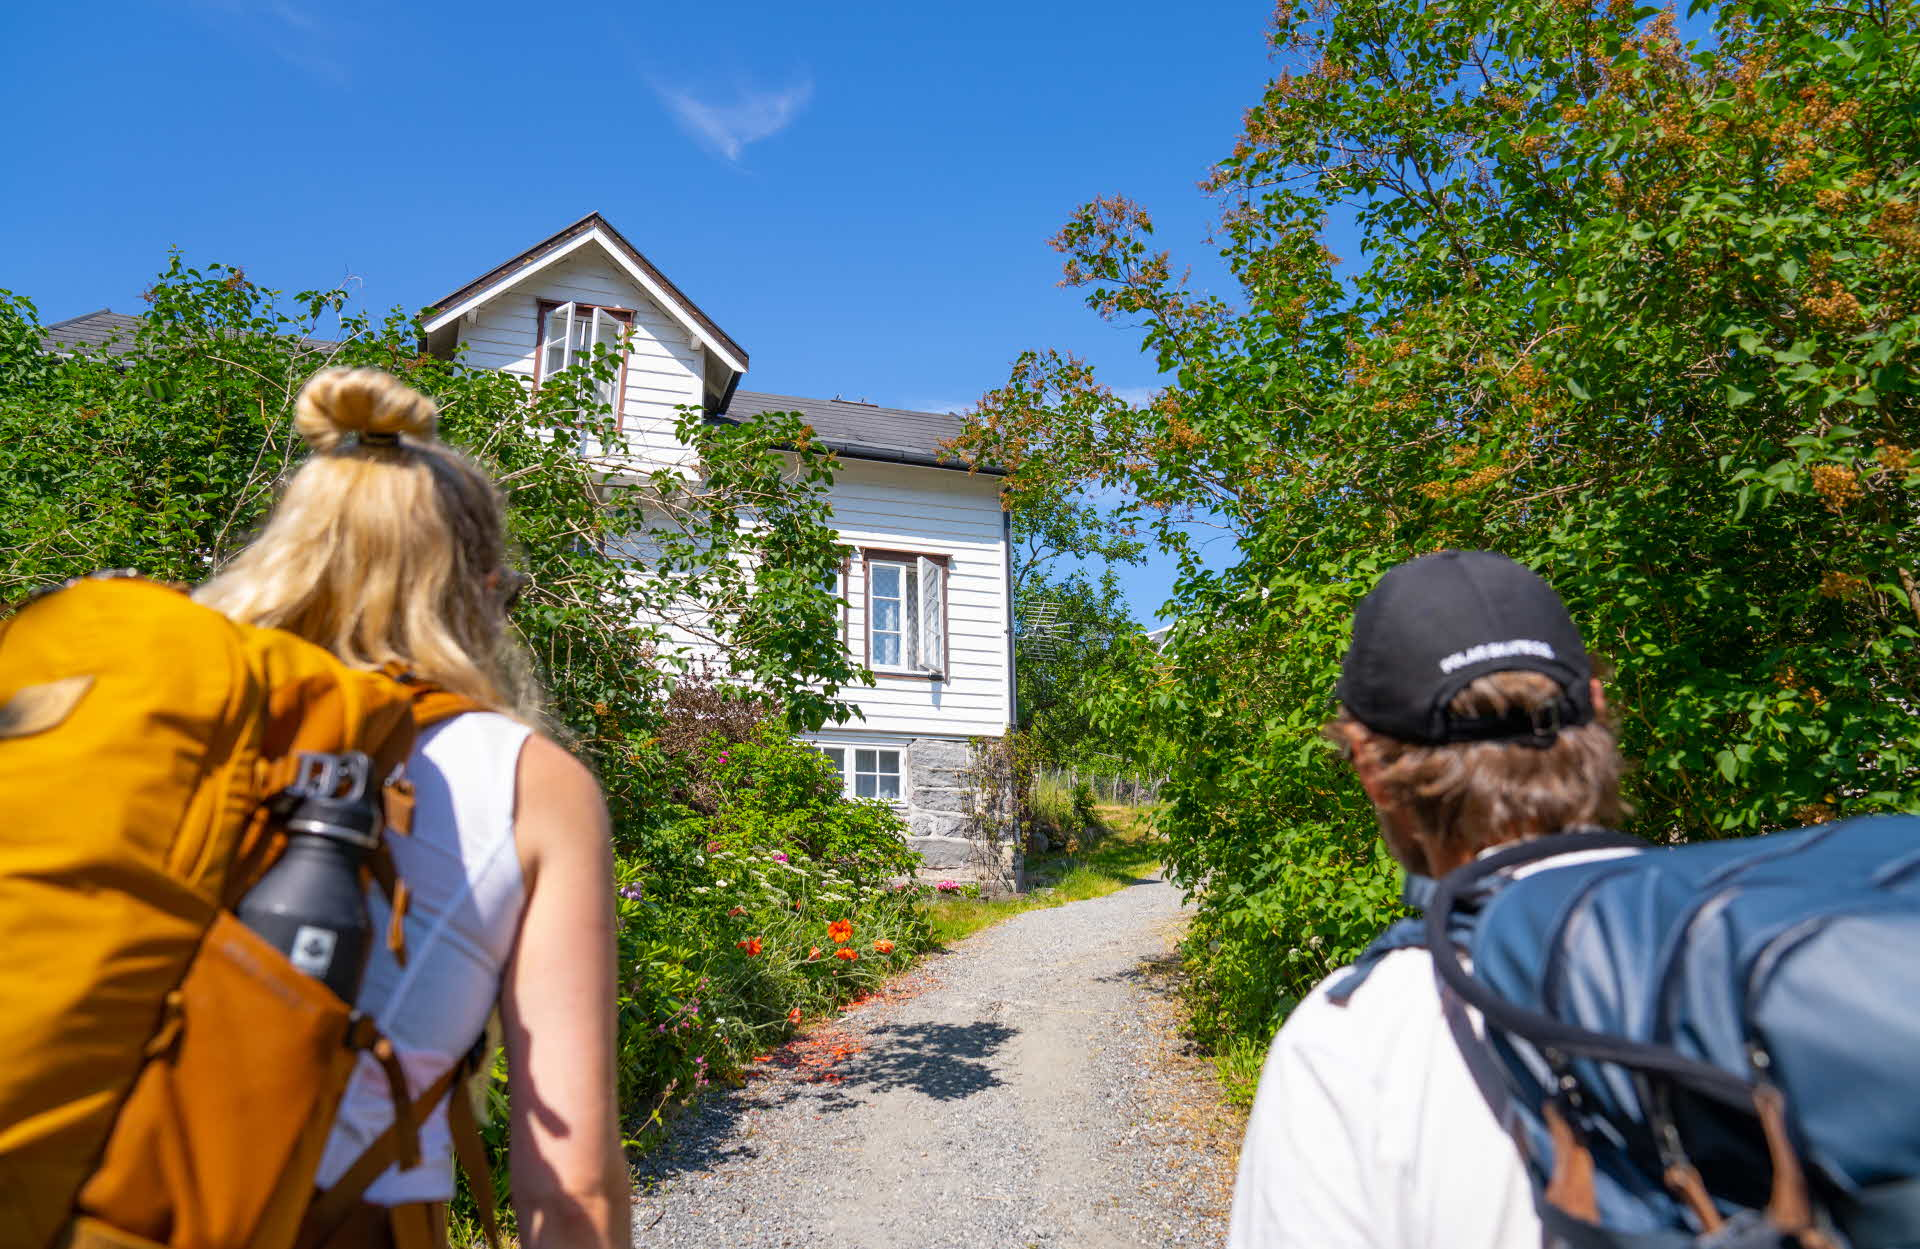 A man and a woman wearing backpacks looking at an old house in Geiranger